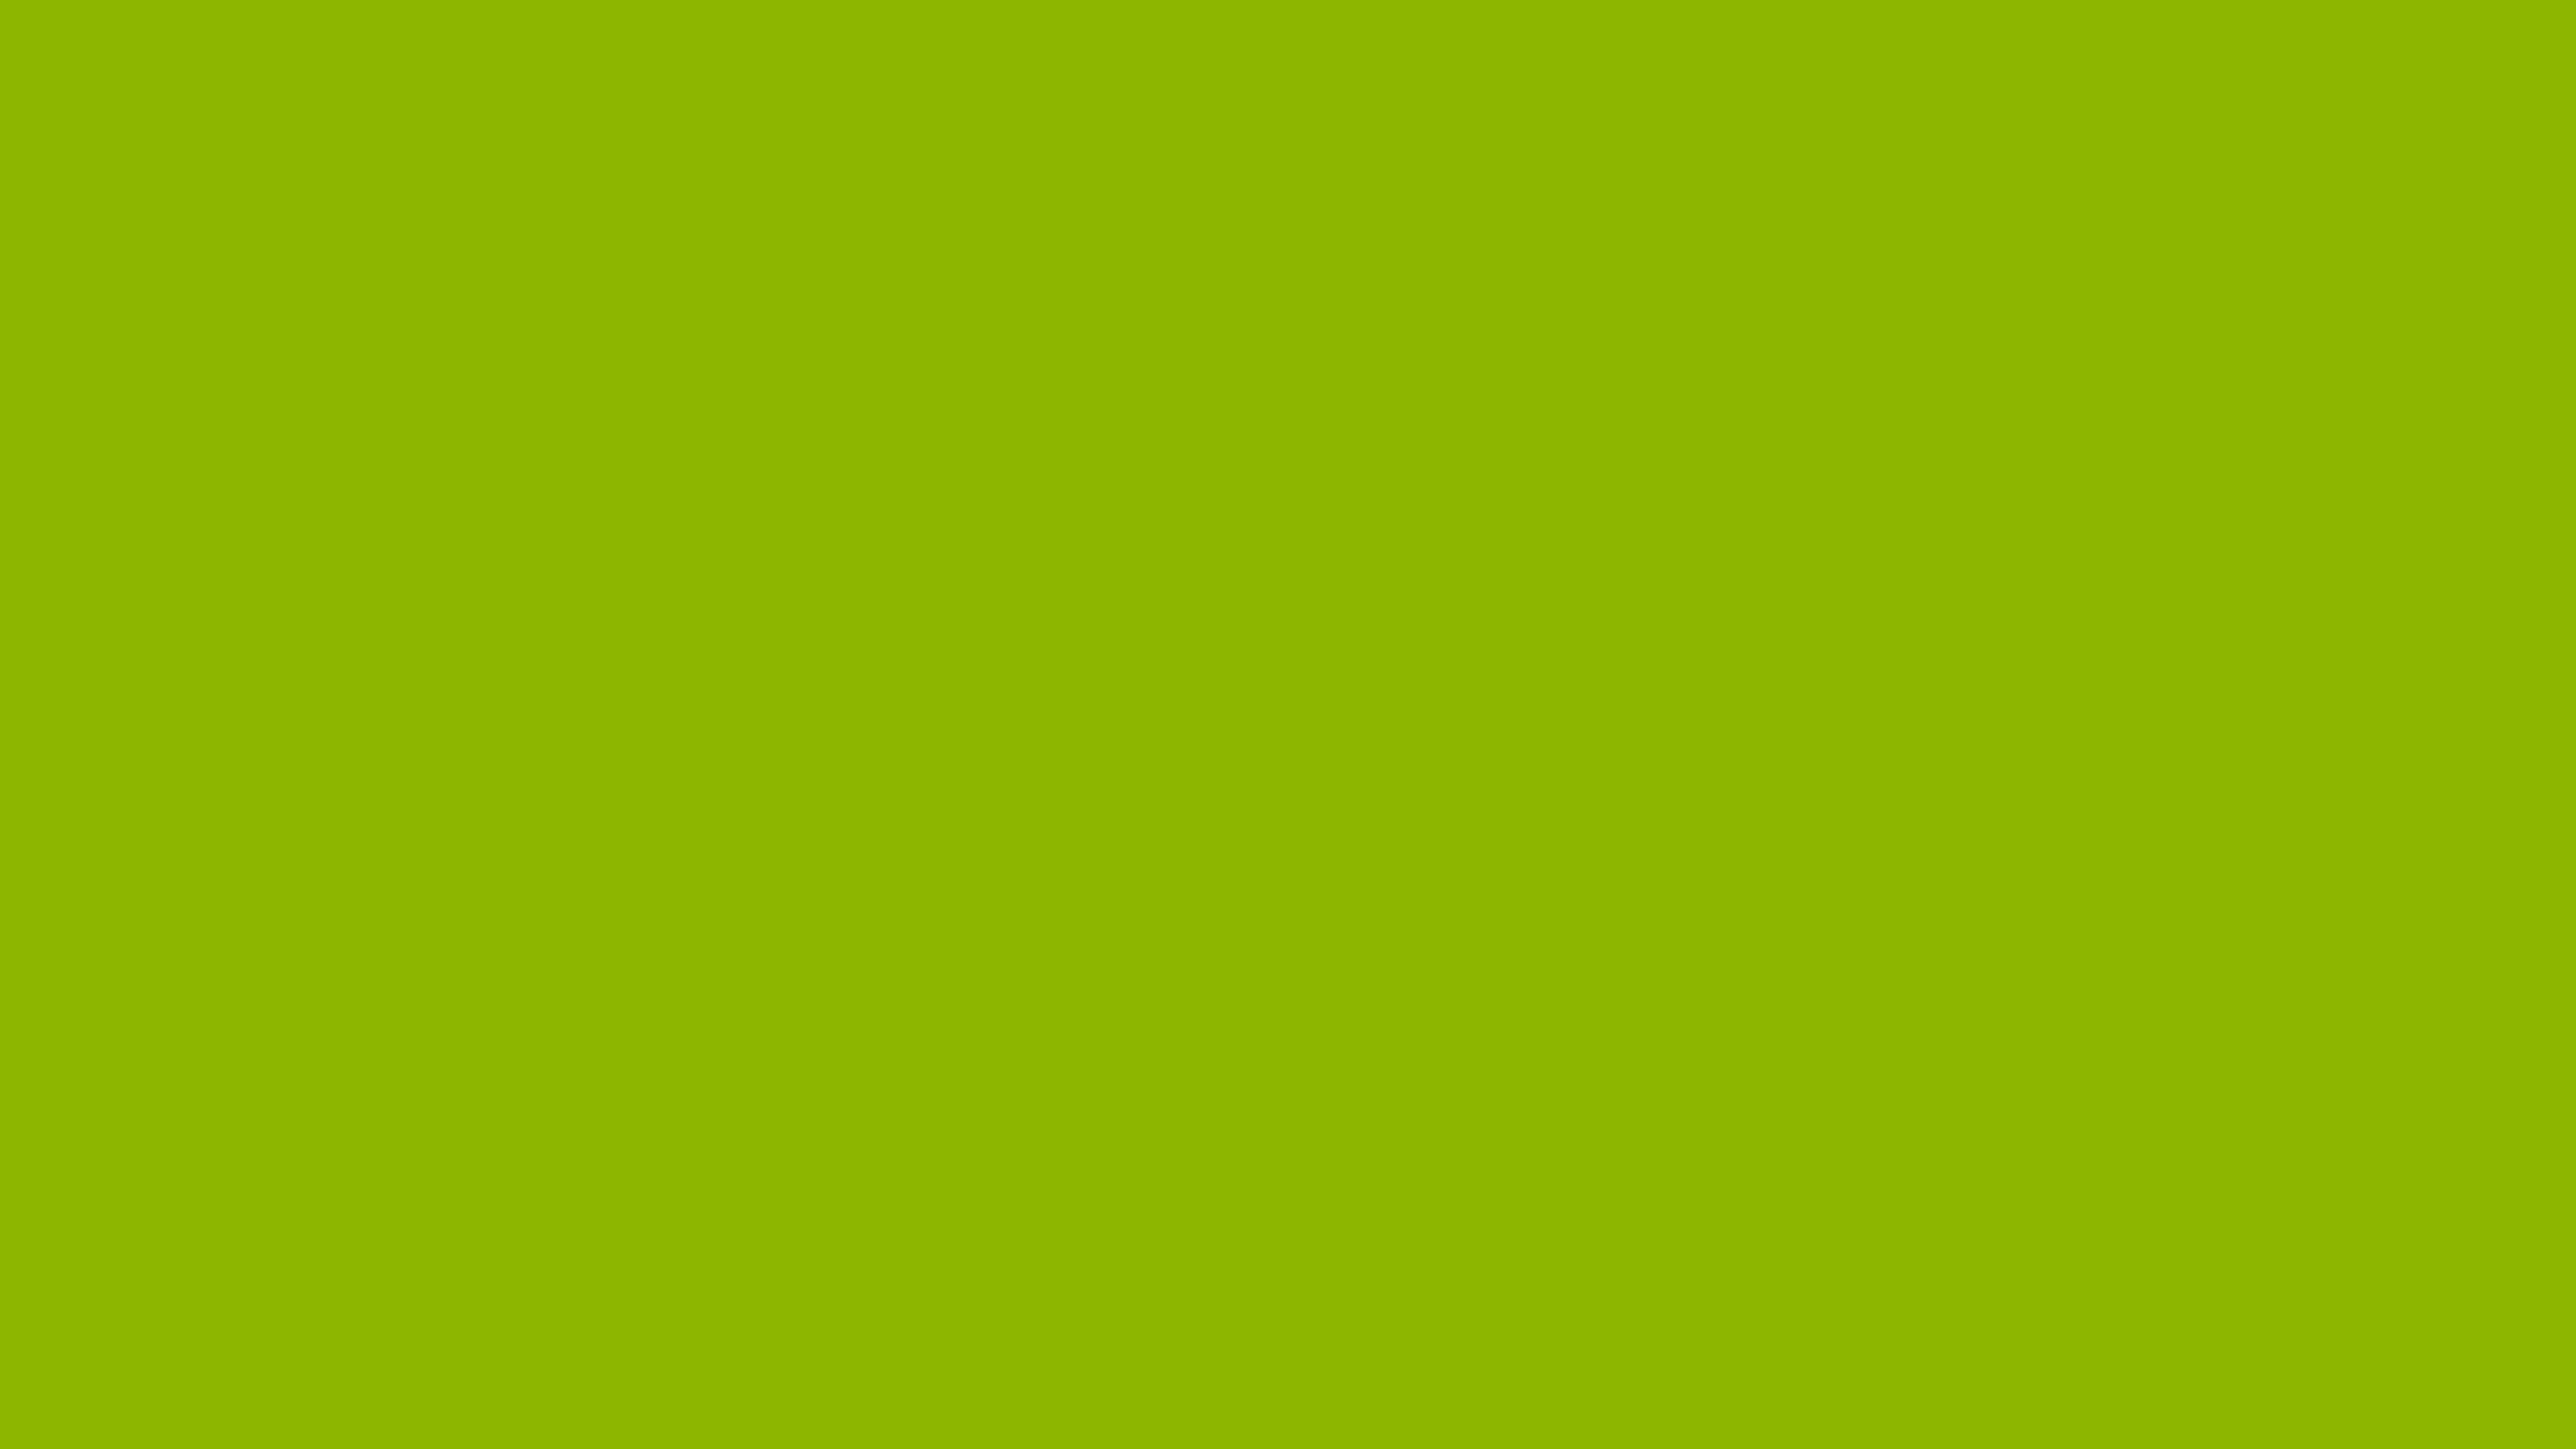 5120x2880 Apple Green Solid Color Background